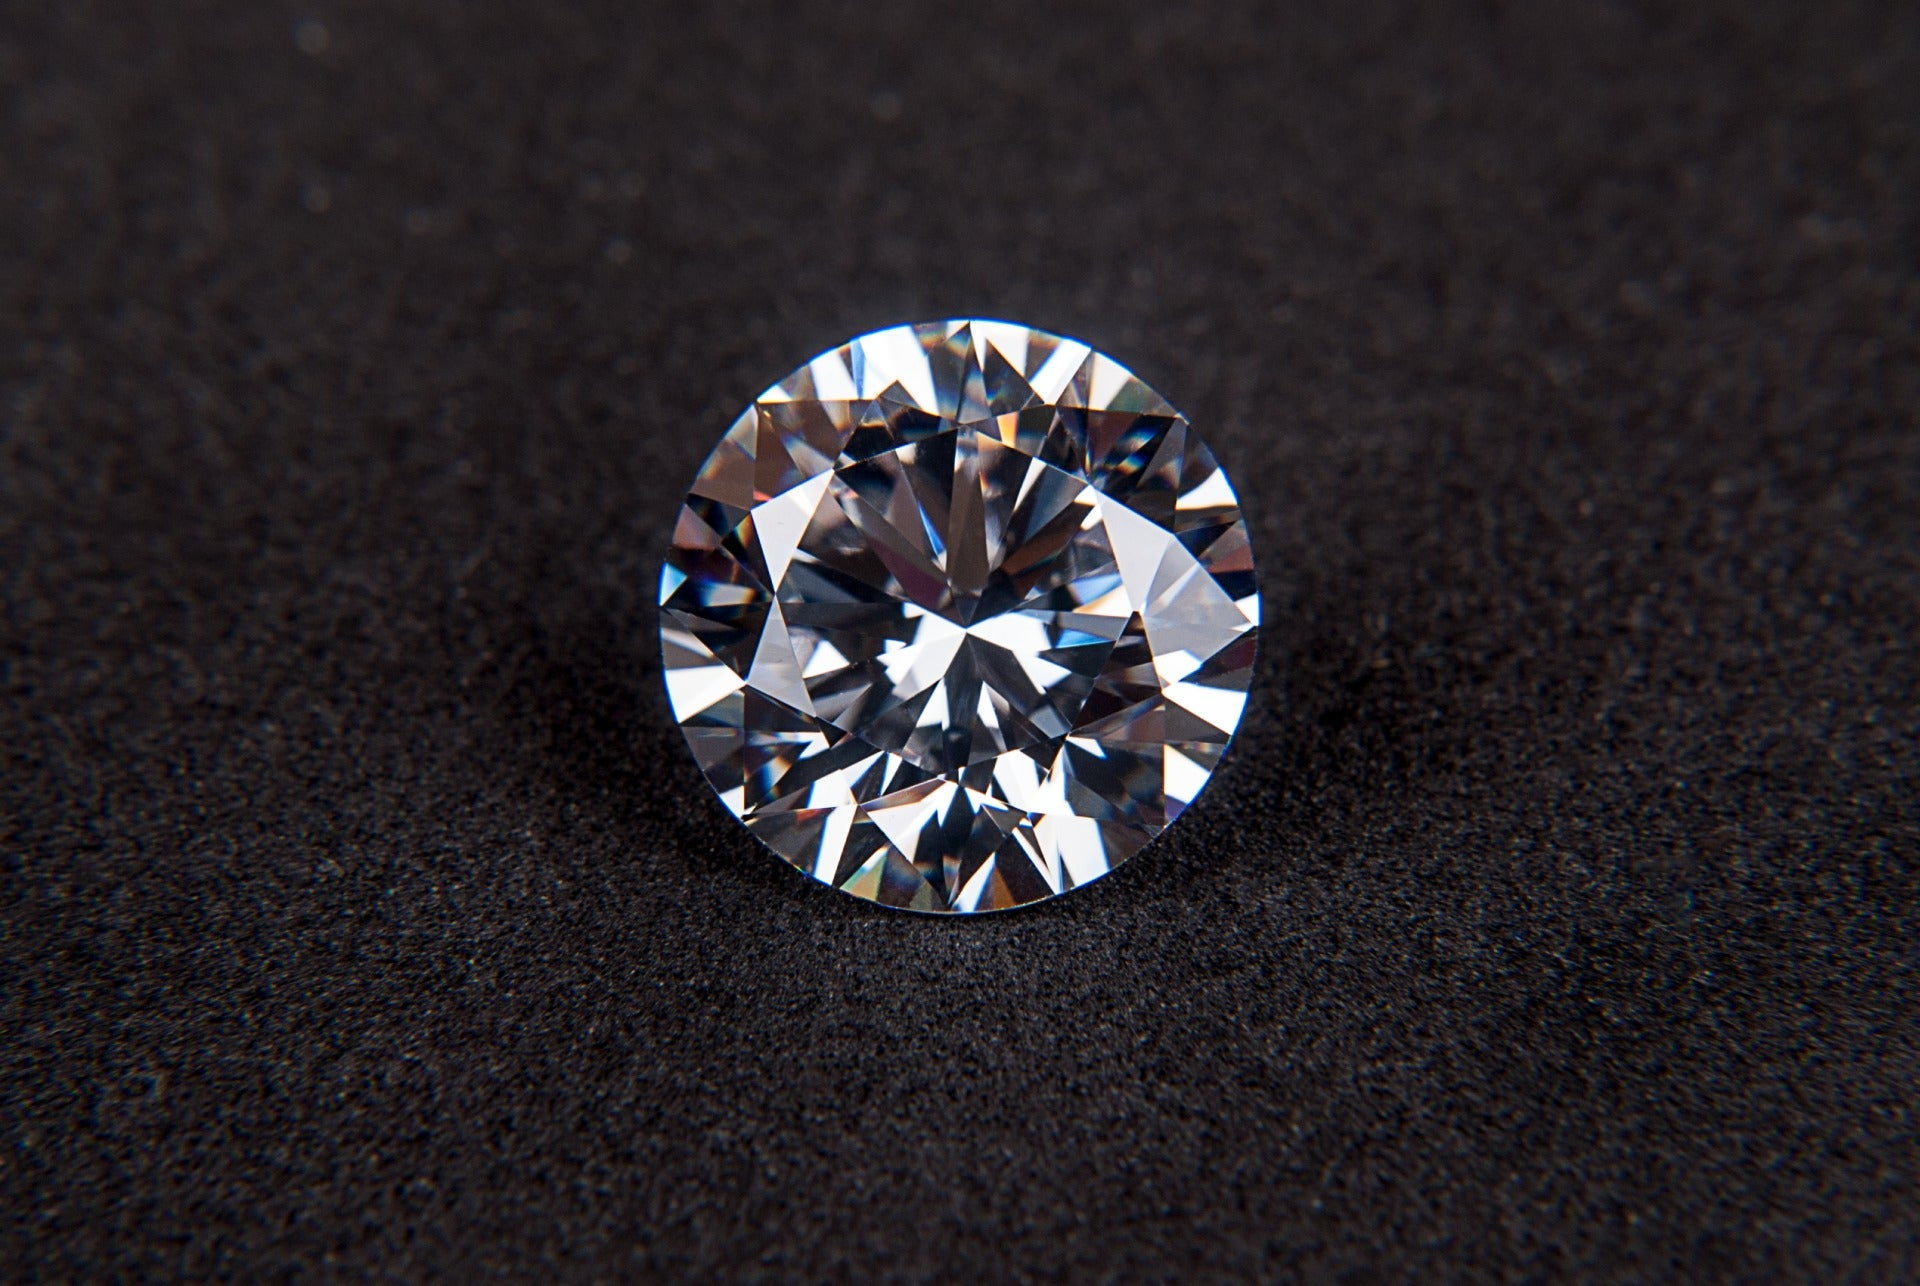 Fake diamonds helped scientists find the hottest temperature ever recorded on Earth